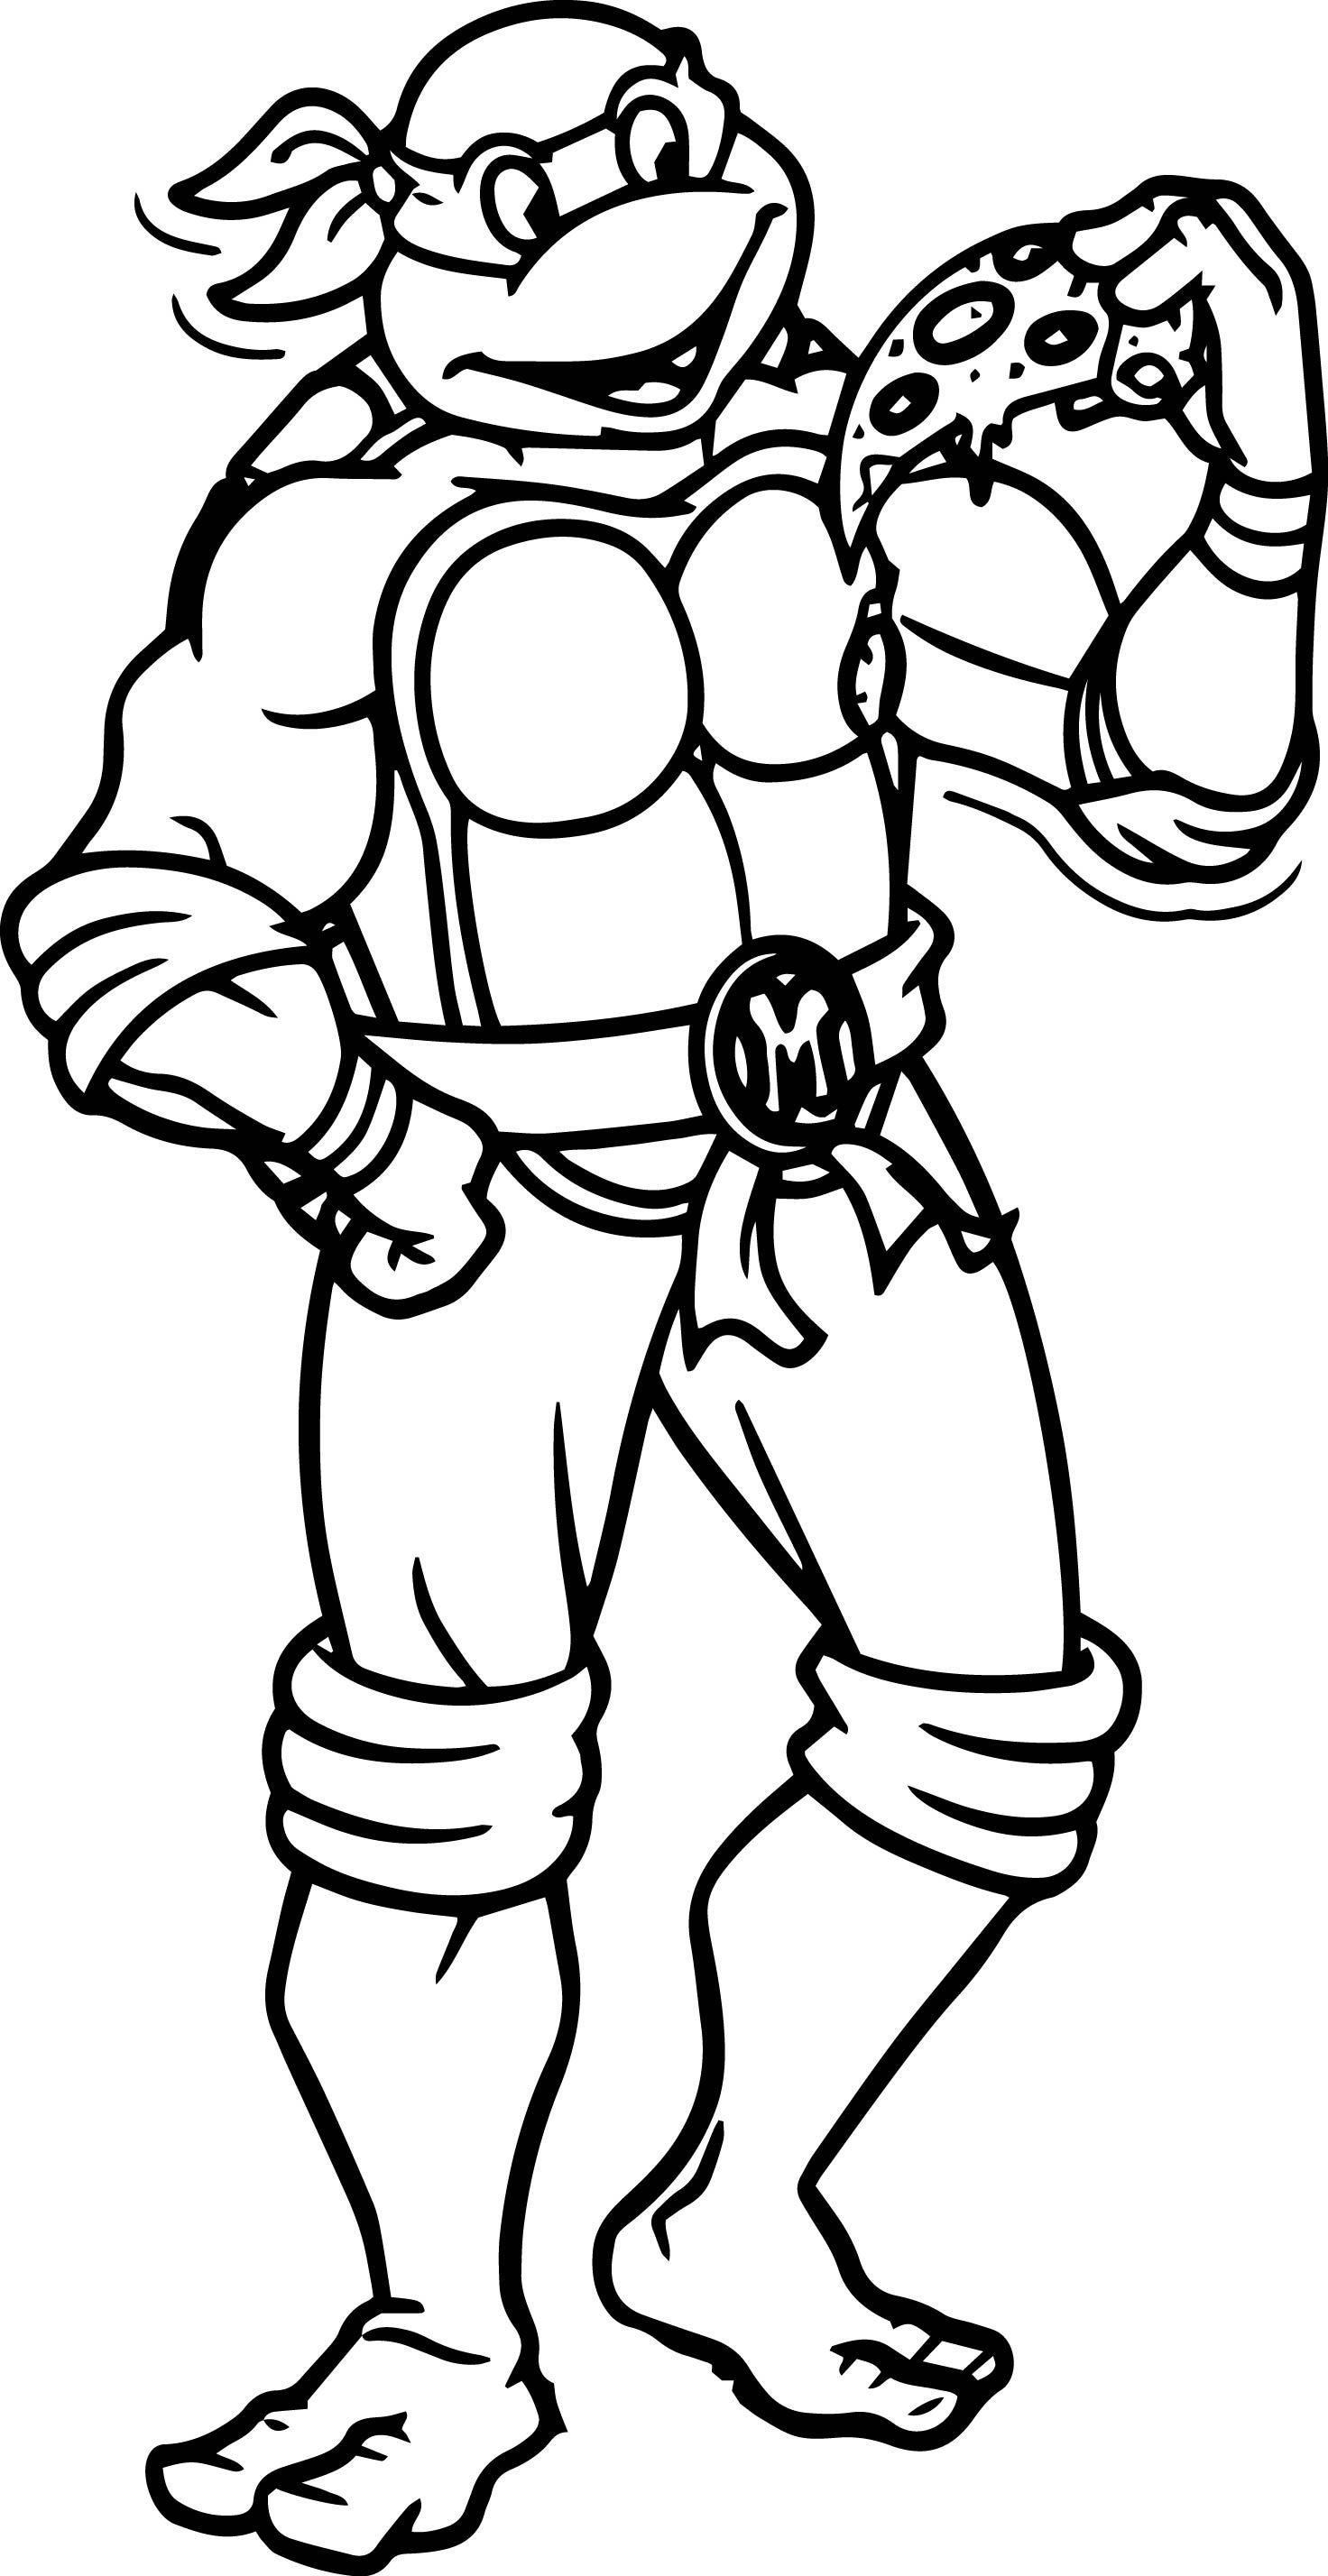 Ninja Turtle Cartoon Coloring Pages | Ninja turtles cartoon, Ninja ...